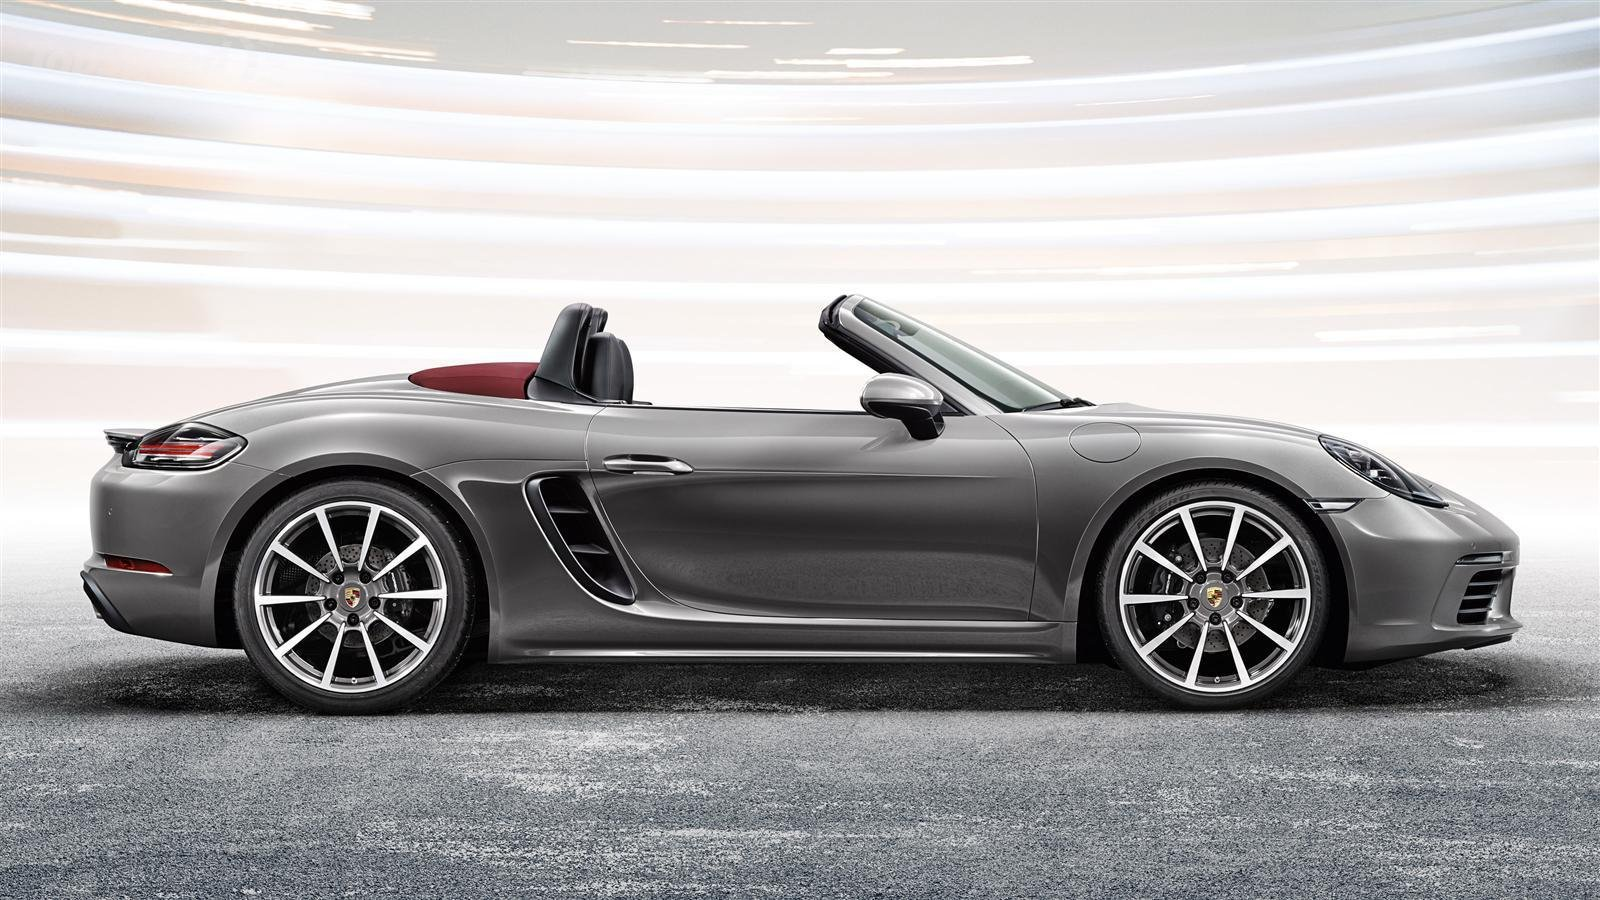 2017 Porsche Boxster S photo - 2